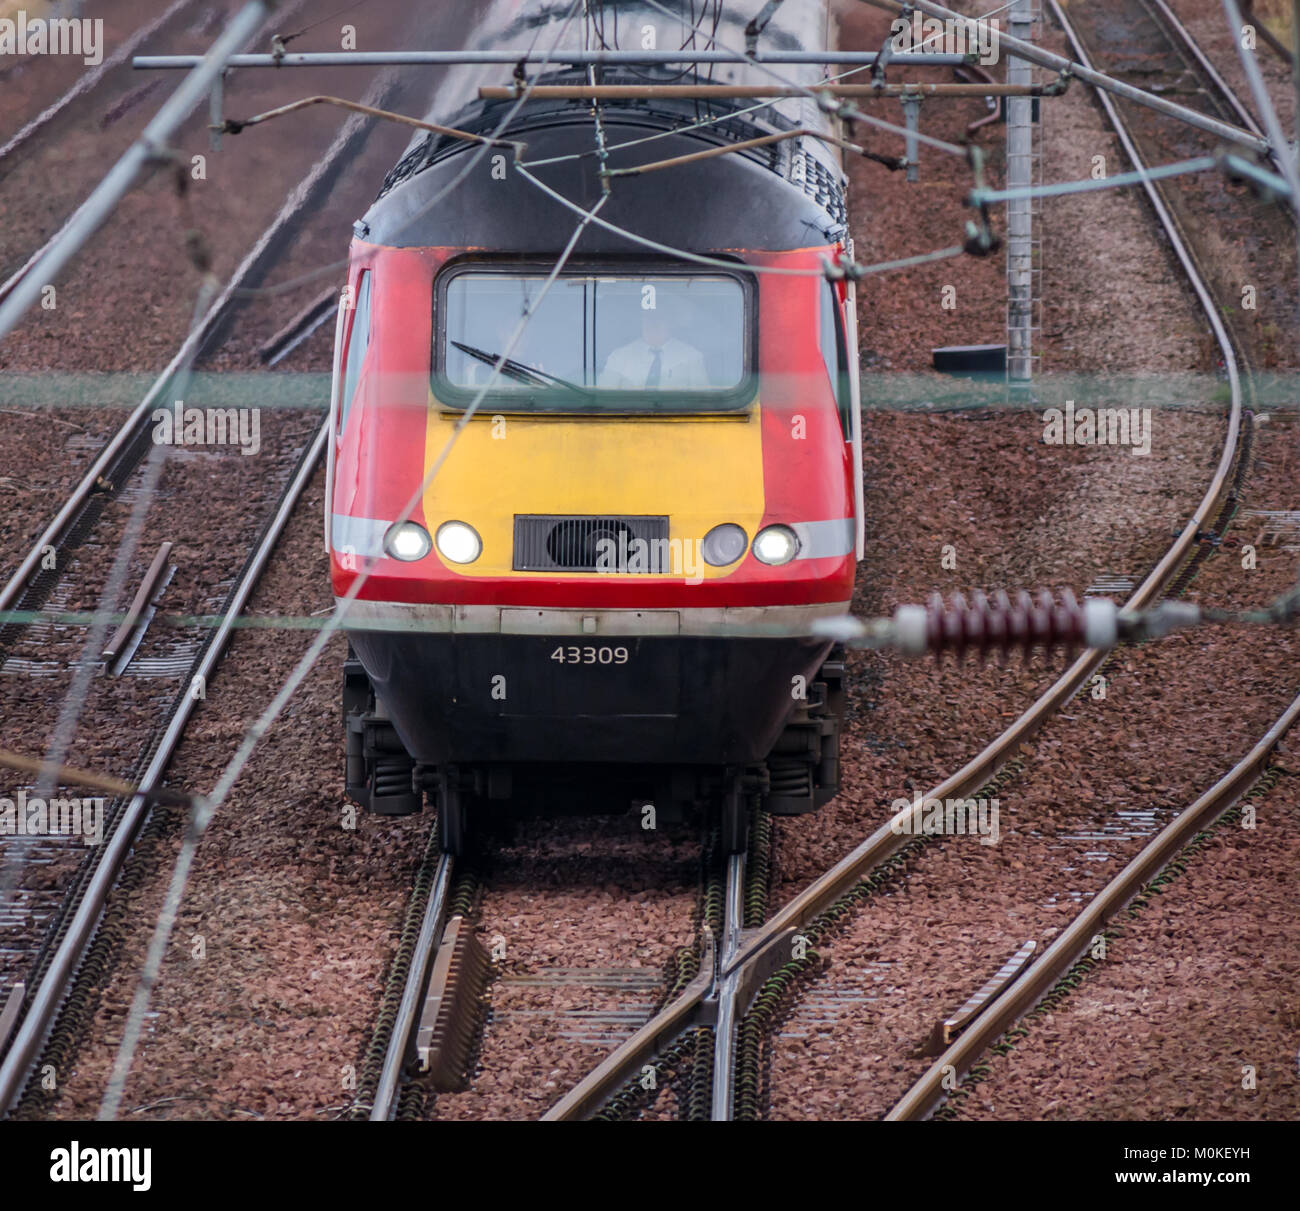 Zoomed view of Virgin train engine approaching Drem Station, with overhead cables, East Lothian, Scotland, UK - Stock Image